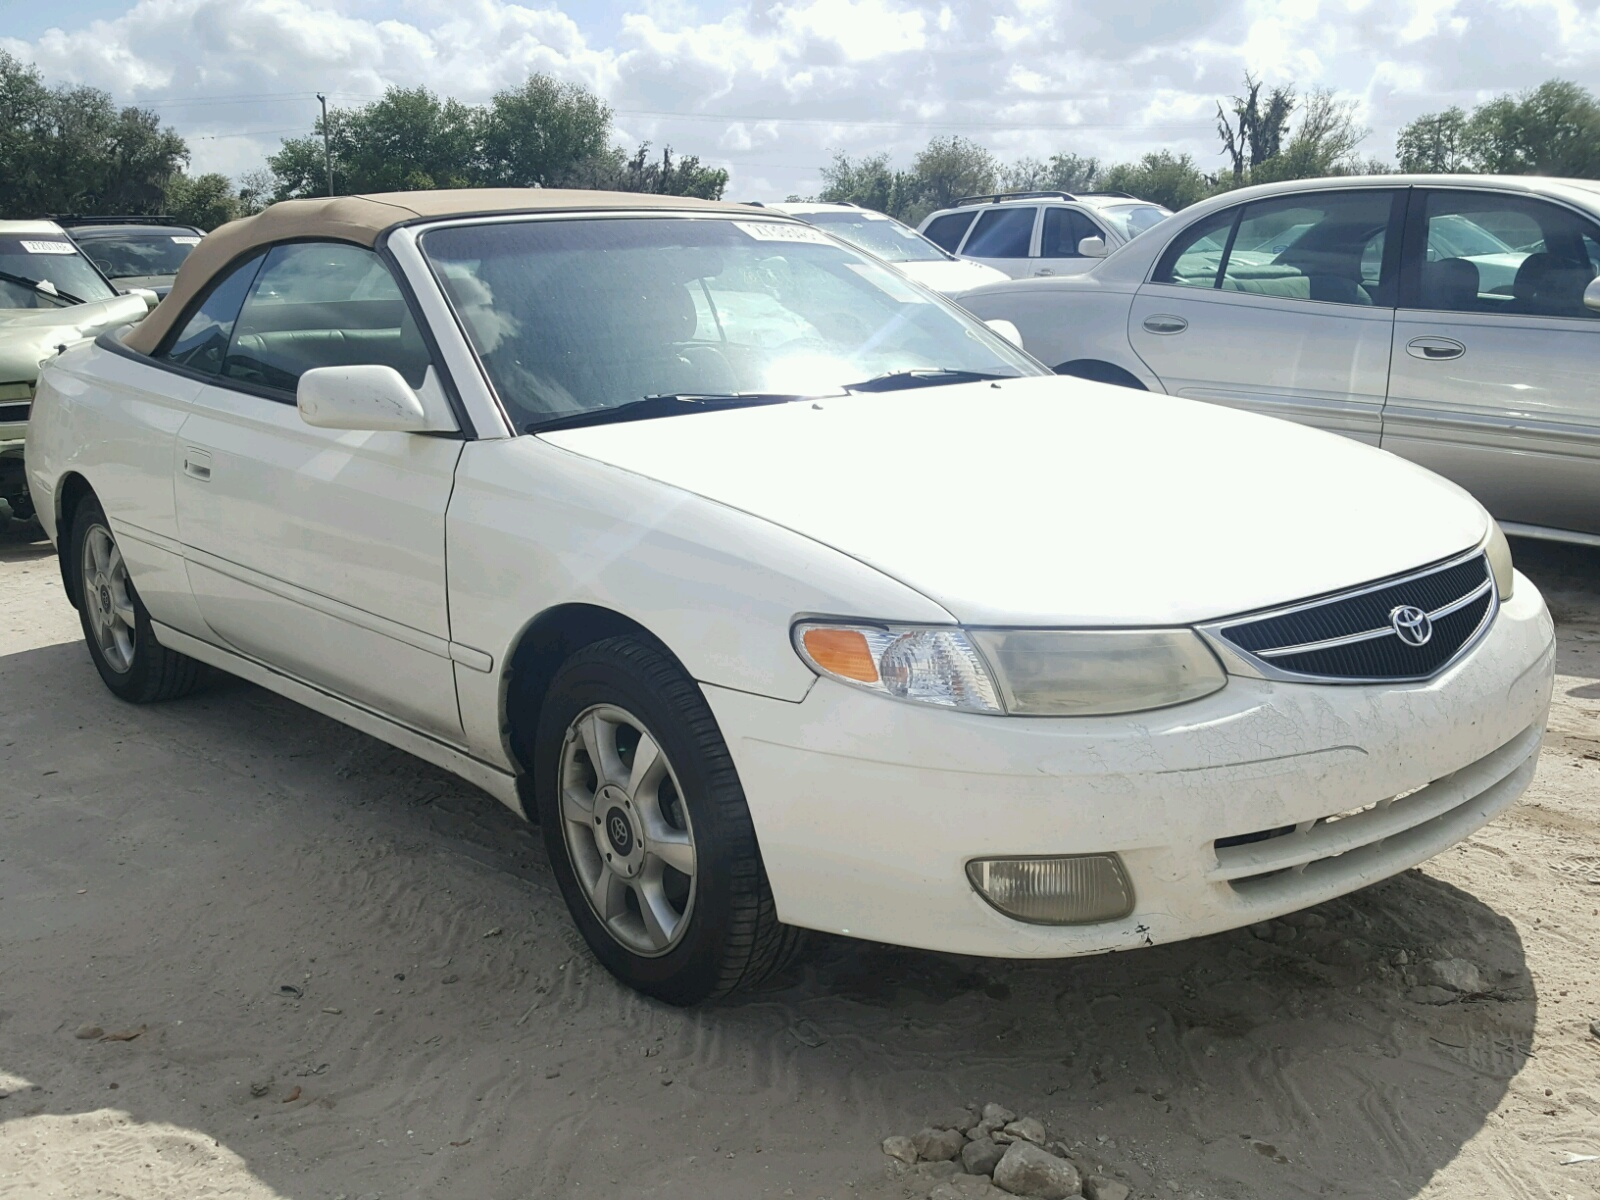 2001 TOYOTA CAMRY SOLA 3.0L